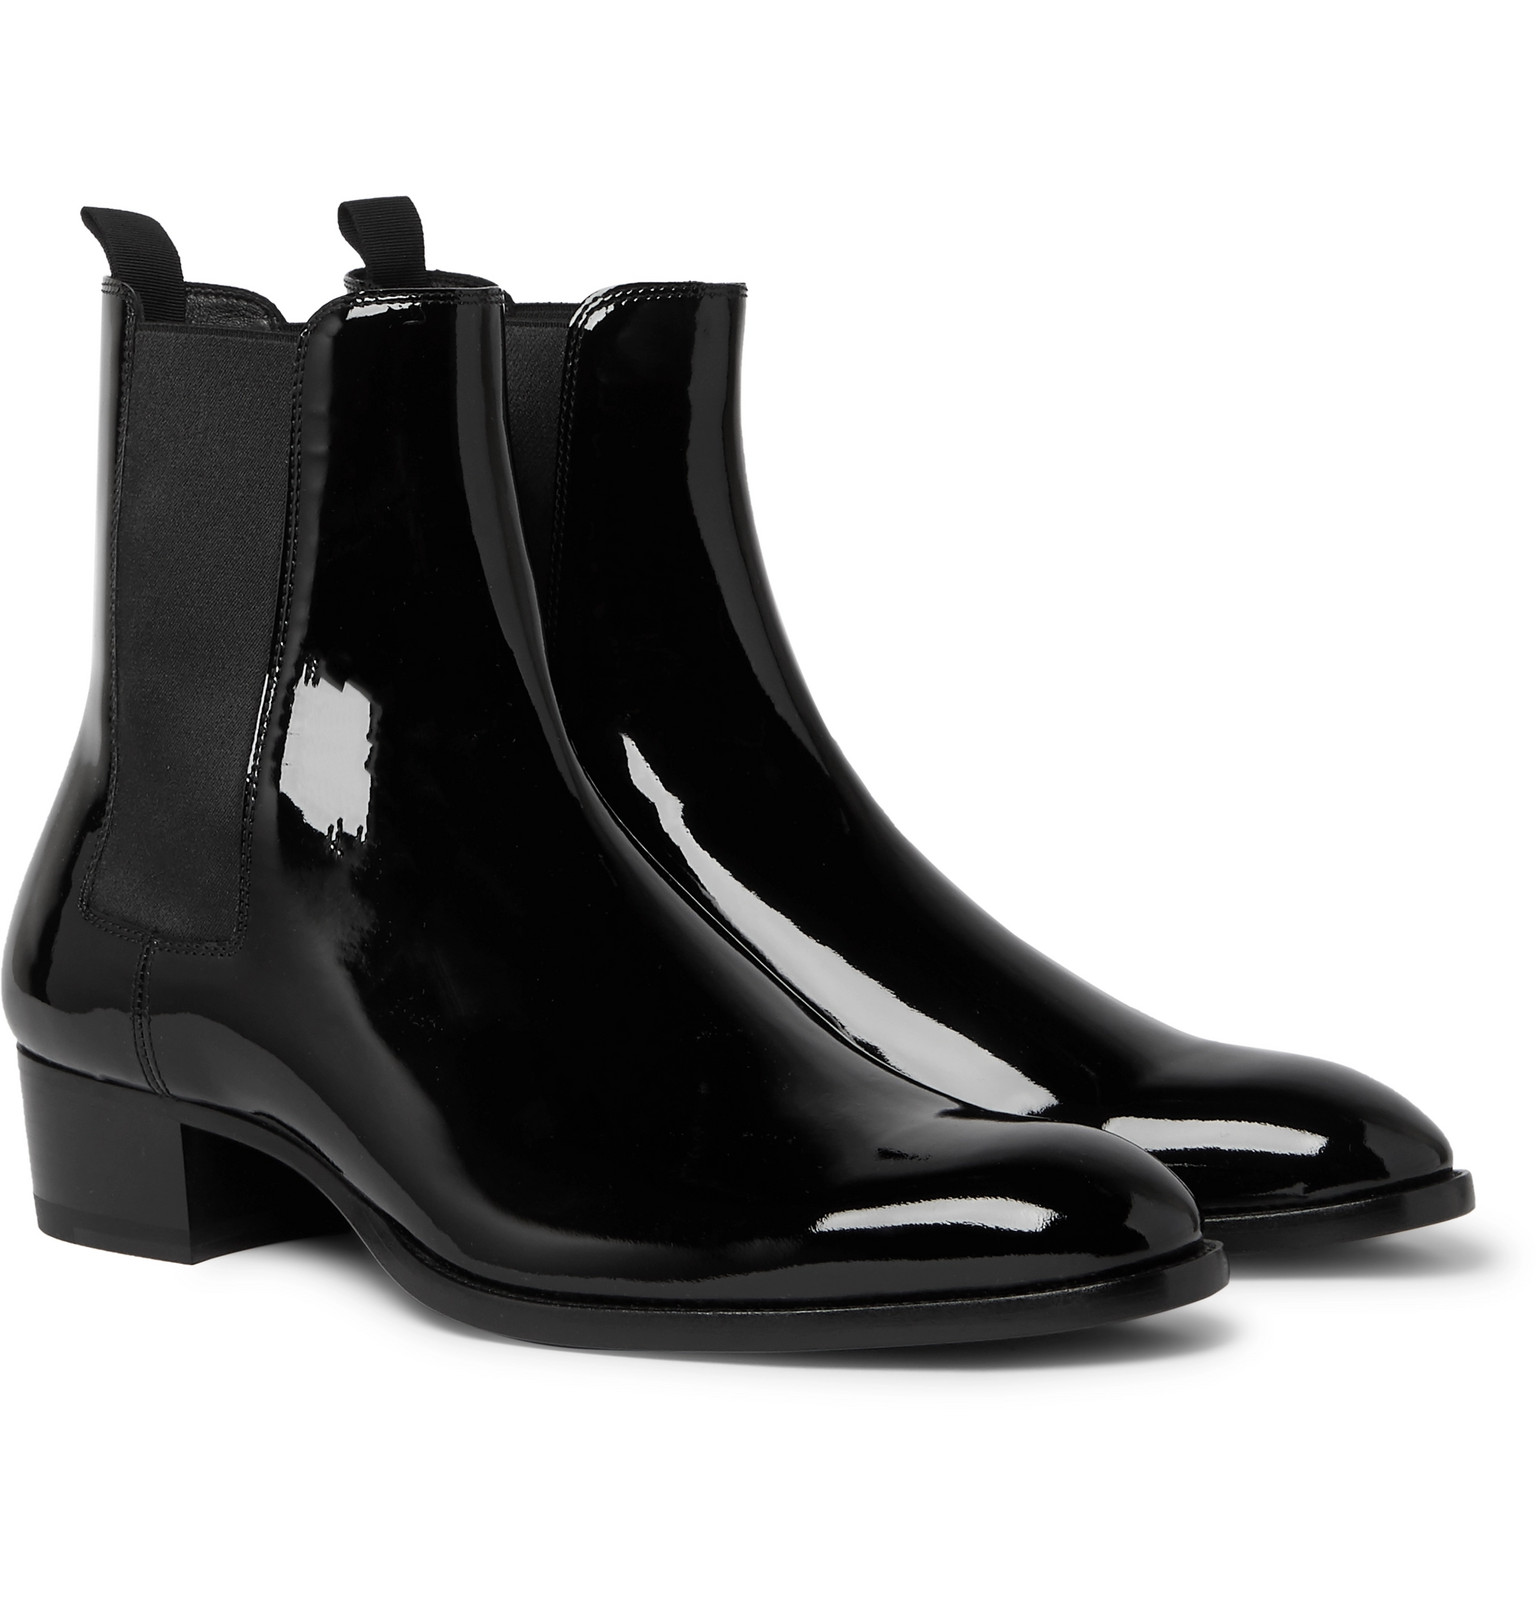 Wyatt Patent-Leather Chelsea Boots